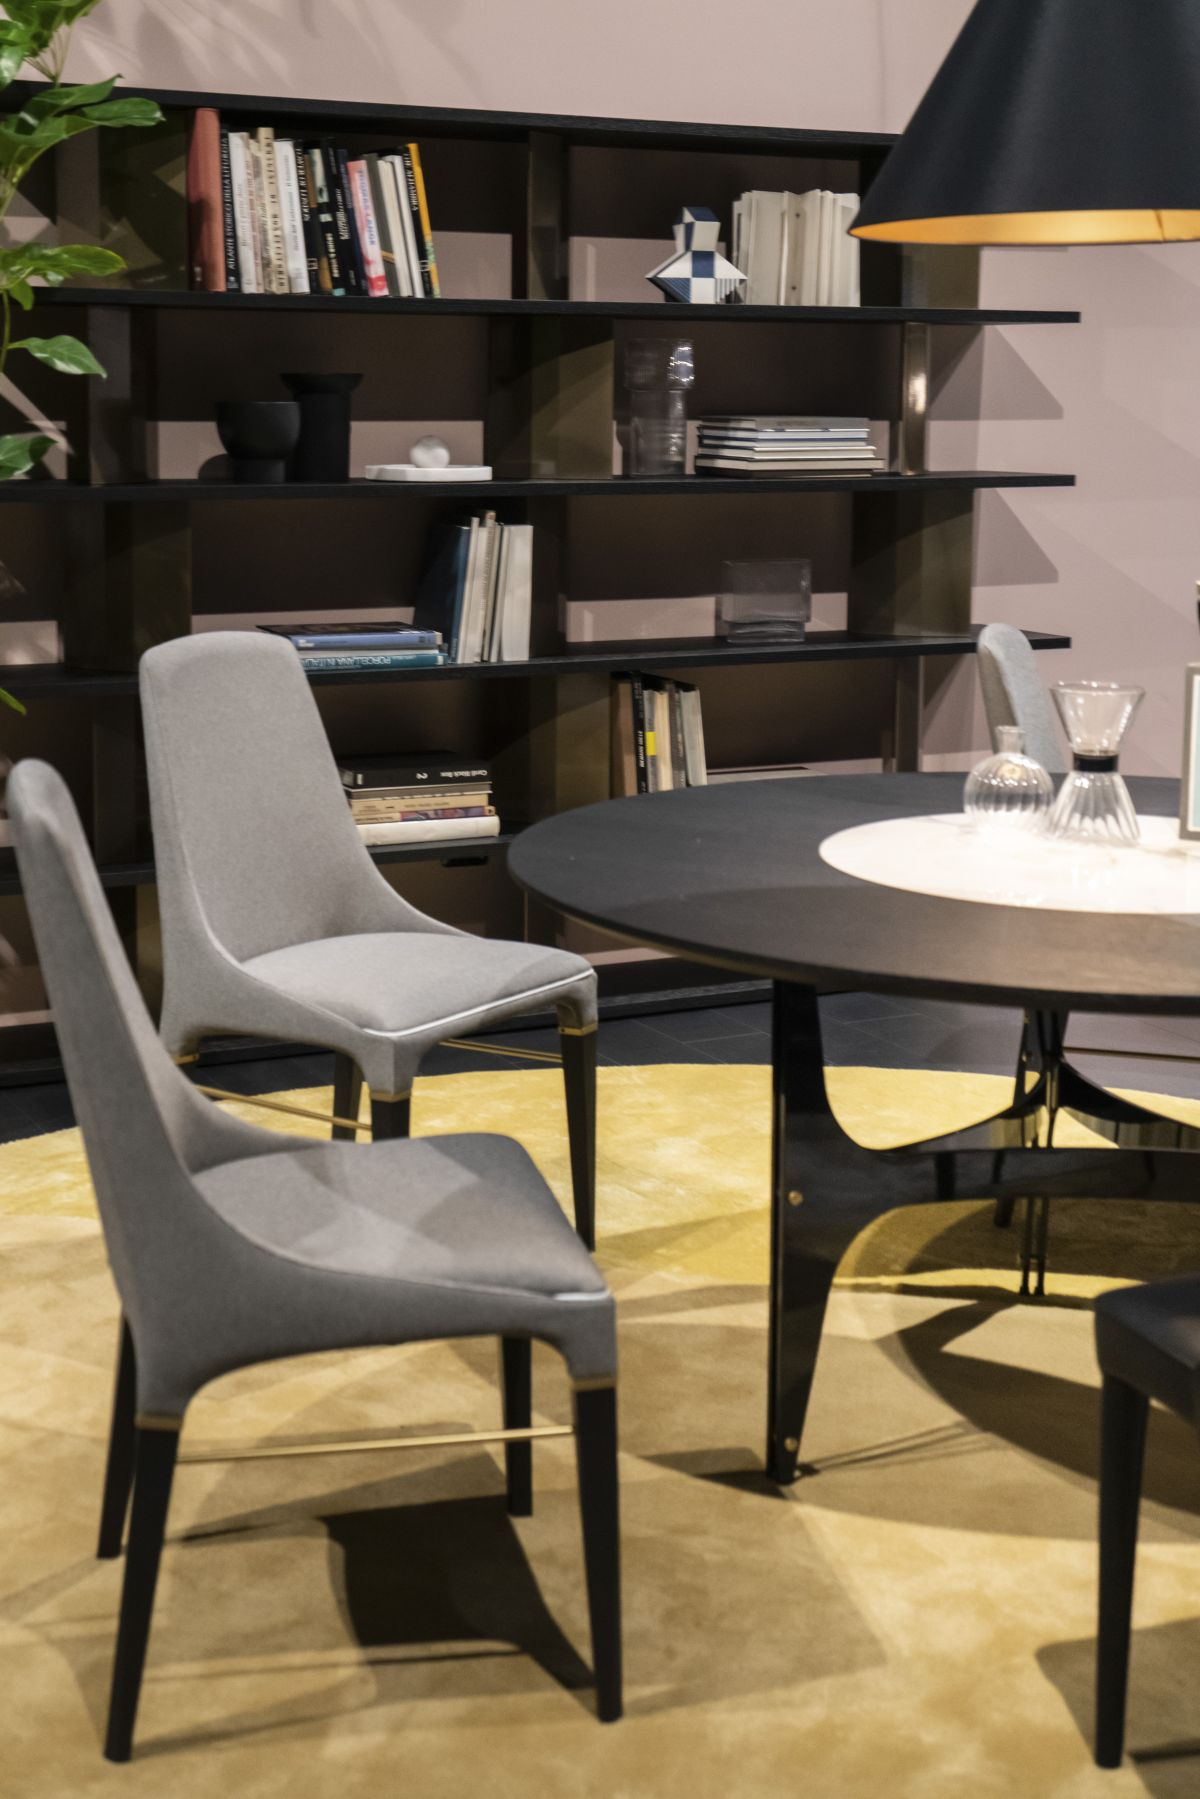 Contemporary design dining table - How To Design And Decorate The Space Around Your Dining Table